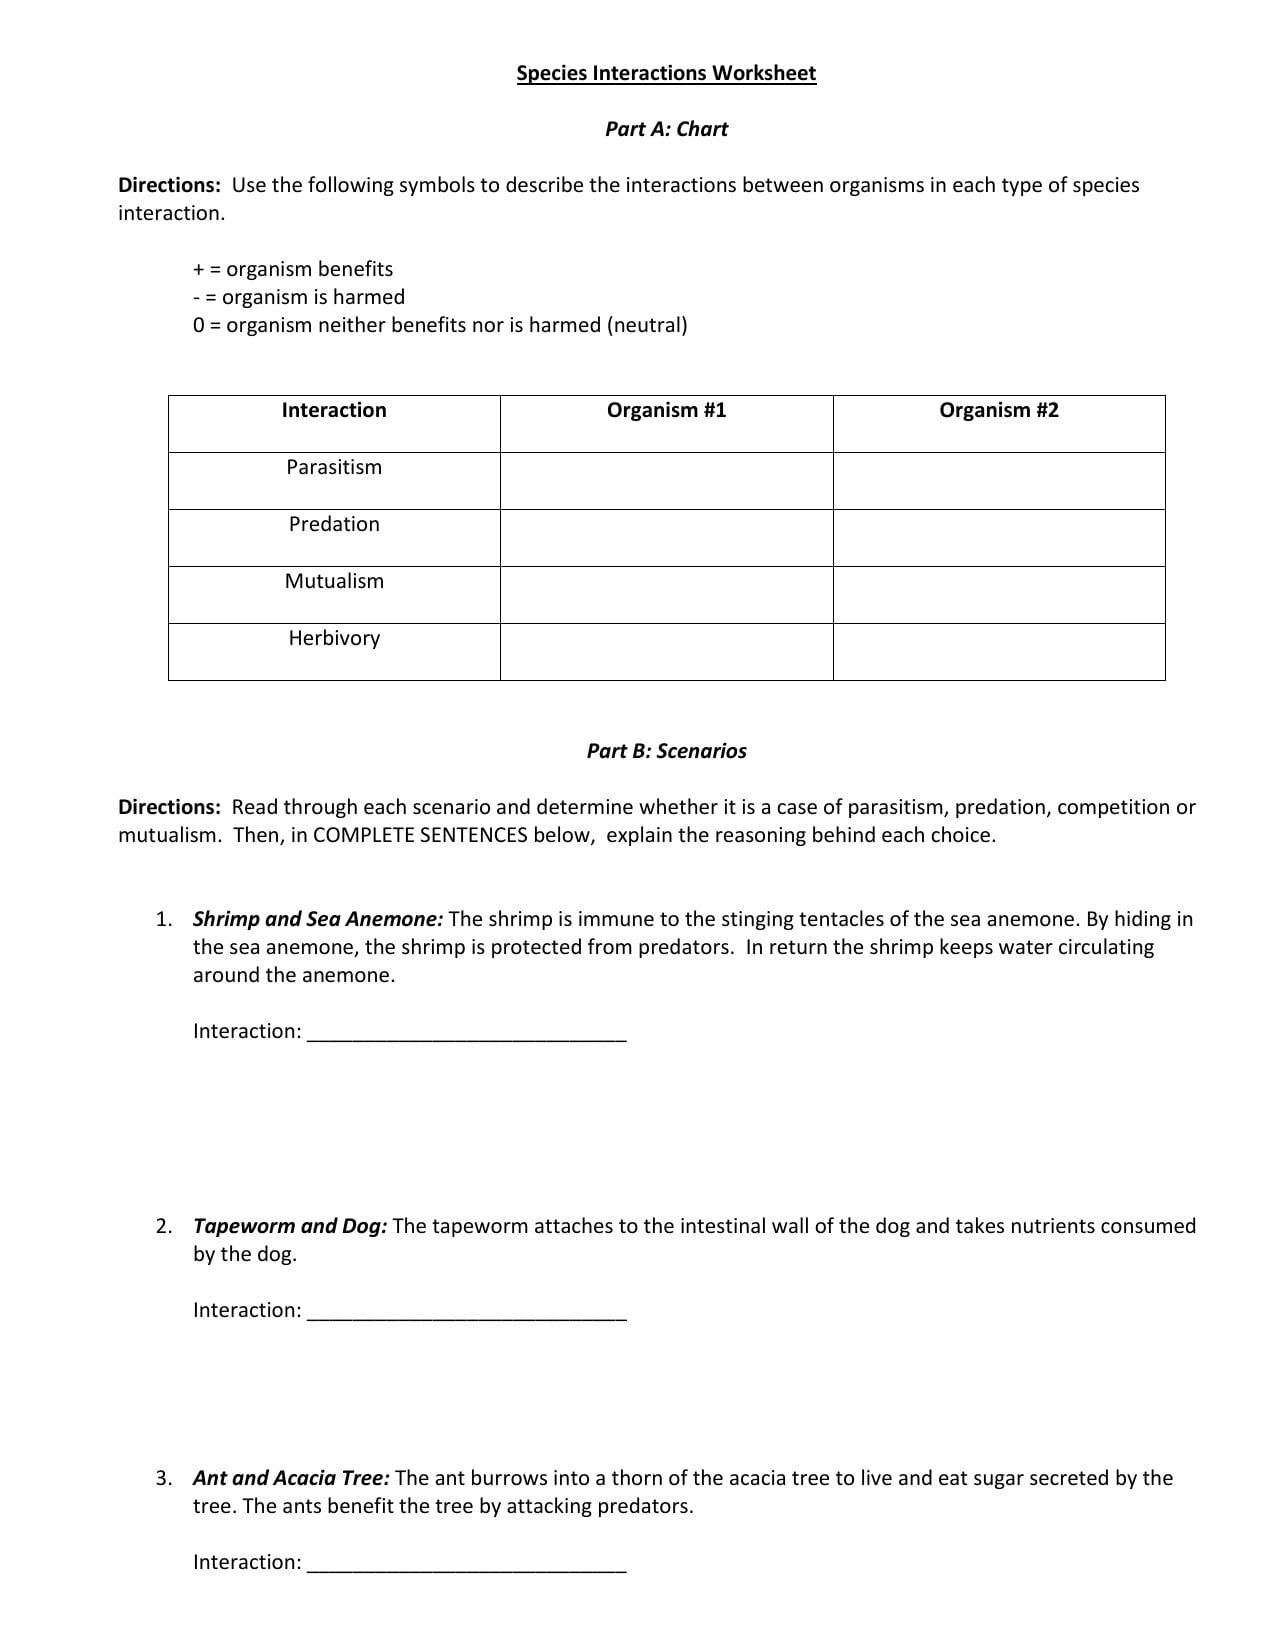 Species Interaction Worksheet Answers